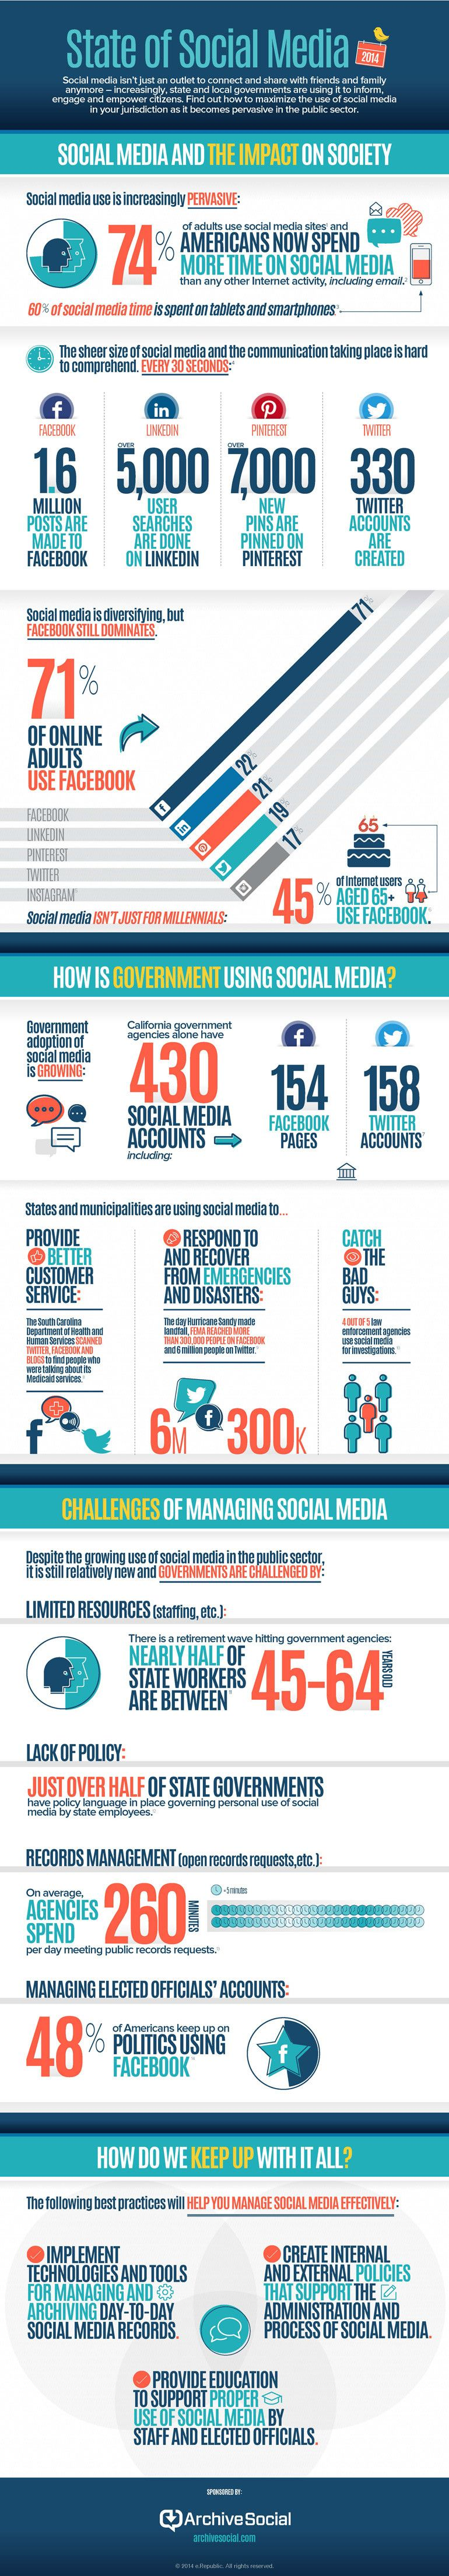 Social media isn't just an outlet to connect and share with friends and family anymore – increasingly, state and local governments are using it to inform, engage and empower citizens. Find out how to maximize the use of social media in your jurisdiction as it becomes pervasive in the public sector